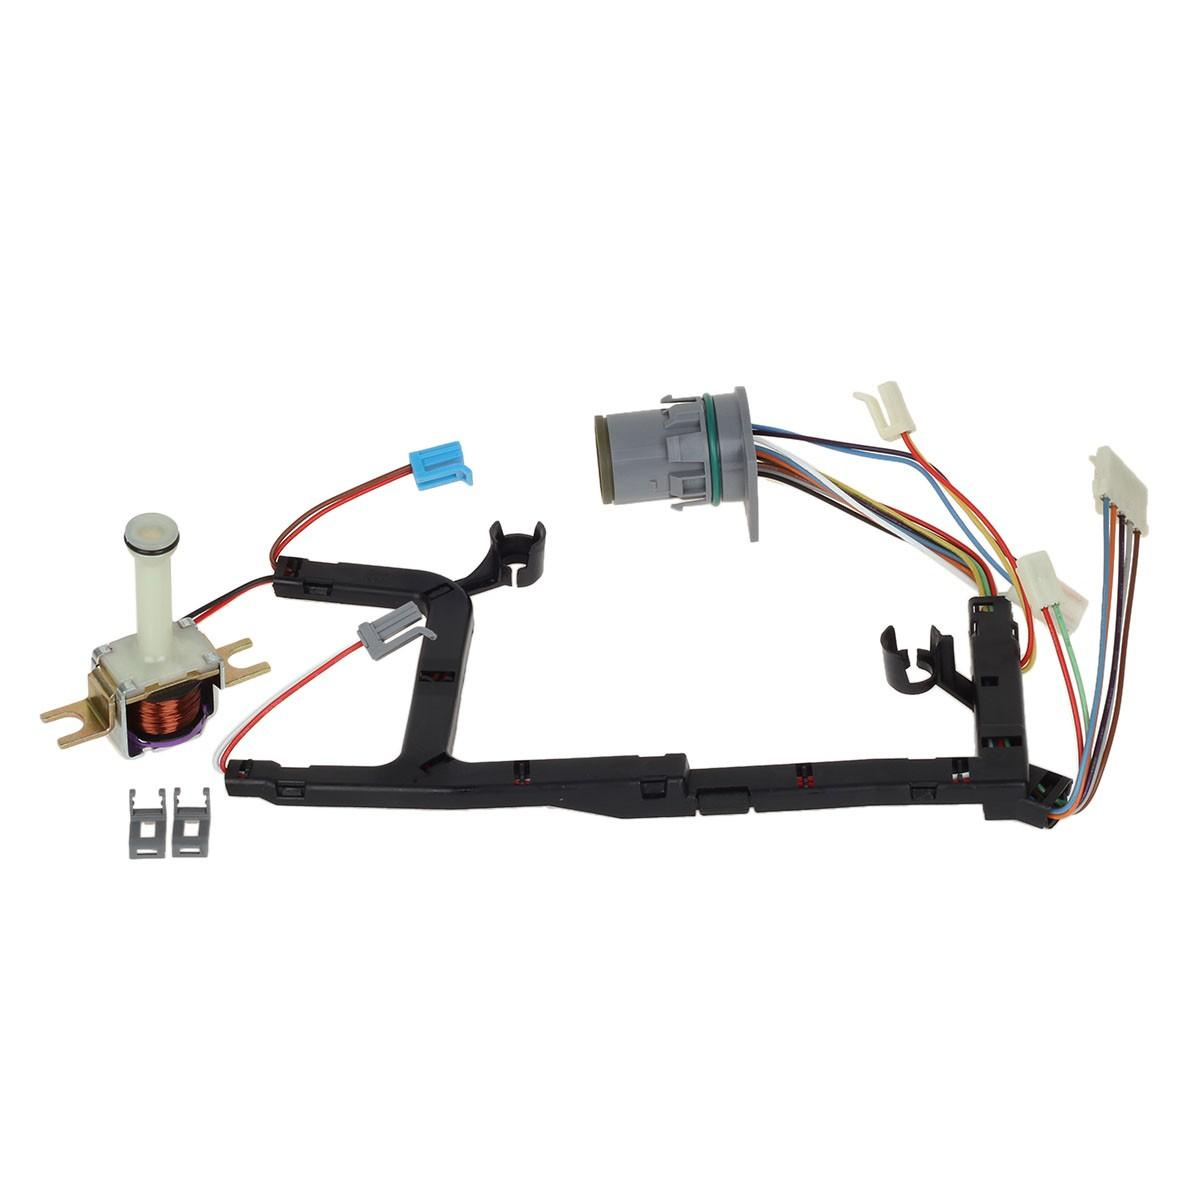 4l60e transmission wiring harness 4l60e image transmission 4l60e tcc look up solenoid internal wire harness on 4l60e transmission wiring harness